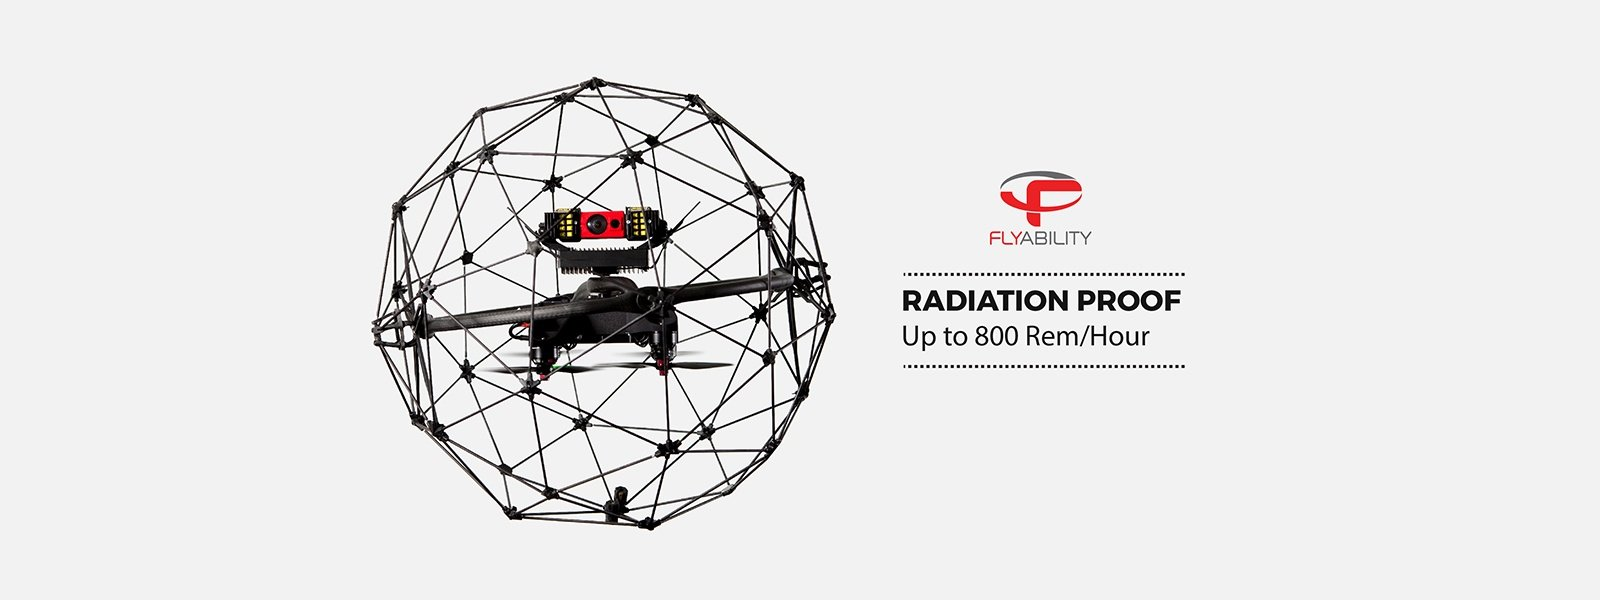 The Elios drone tested to 800 R/H of radiation to increase nuclear safety